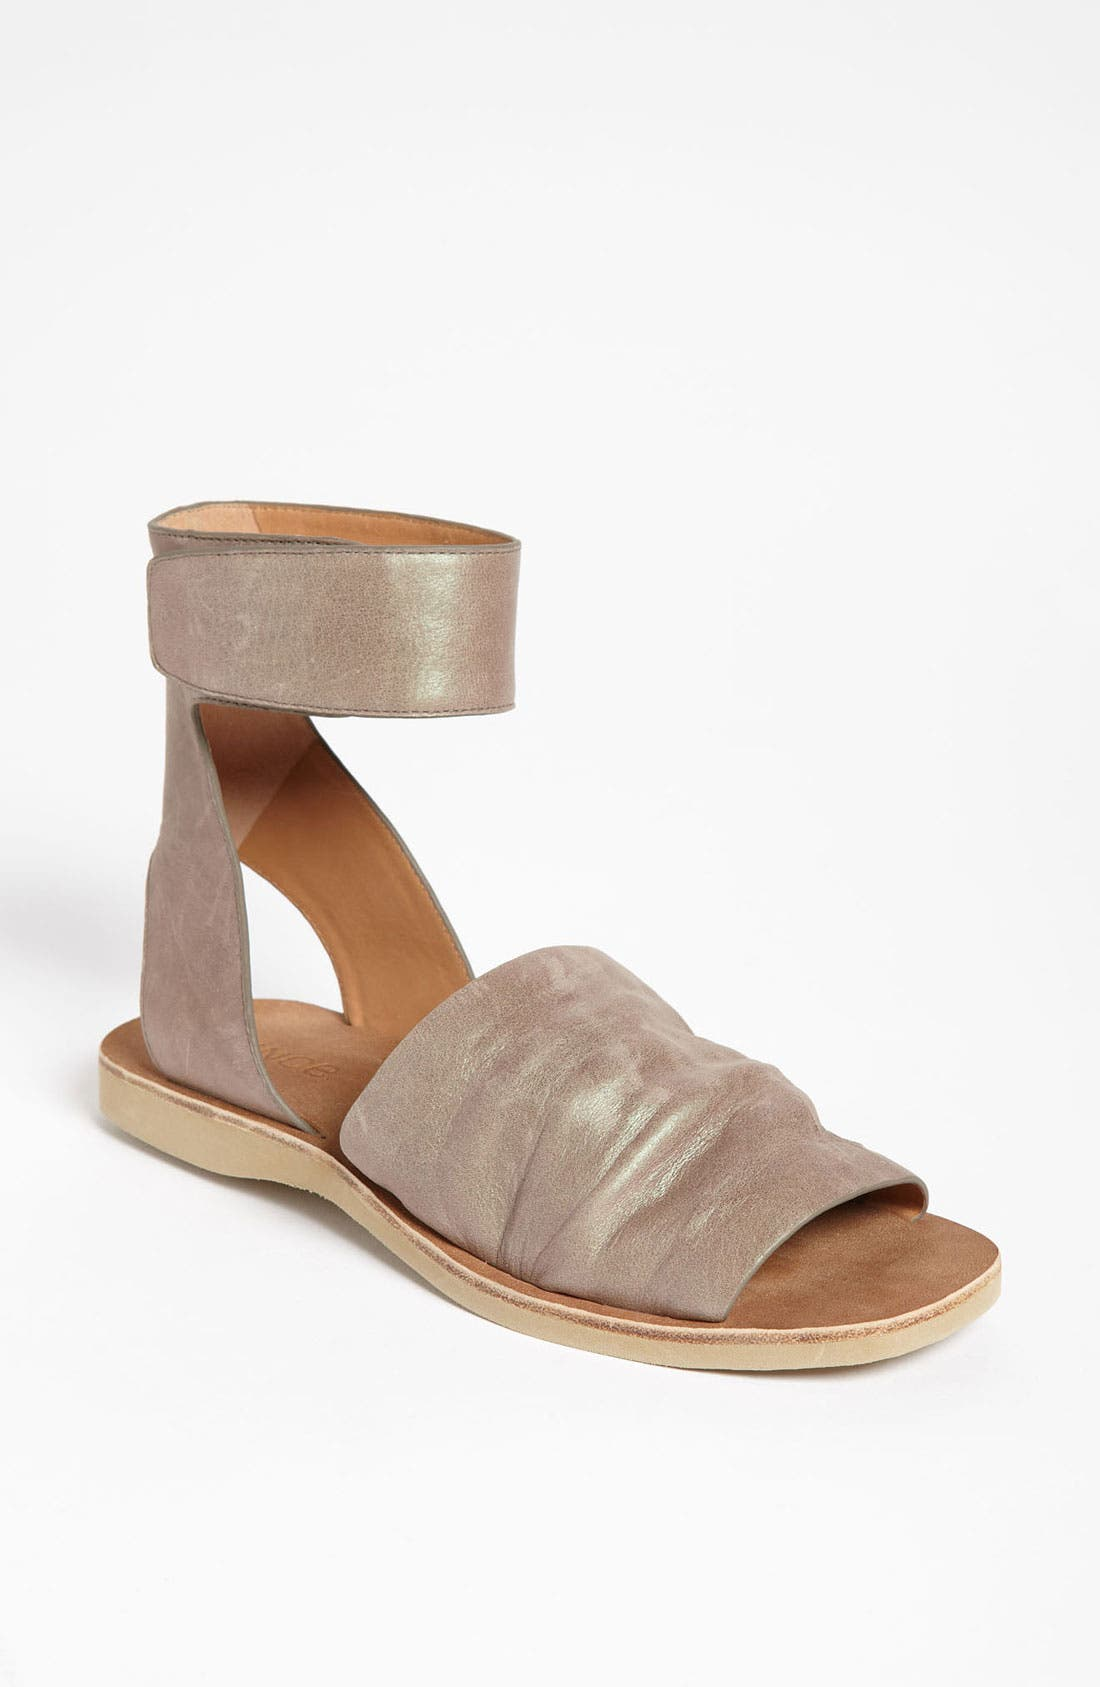 Alternate Image 1 Selected - Vince 'Sadie' Sandal